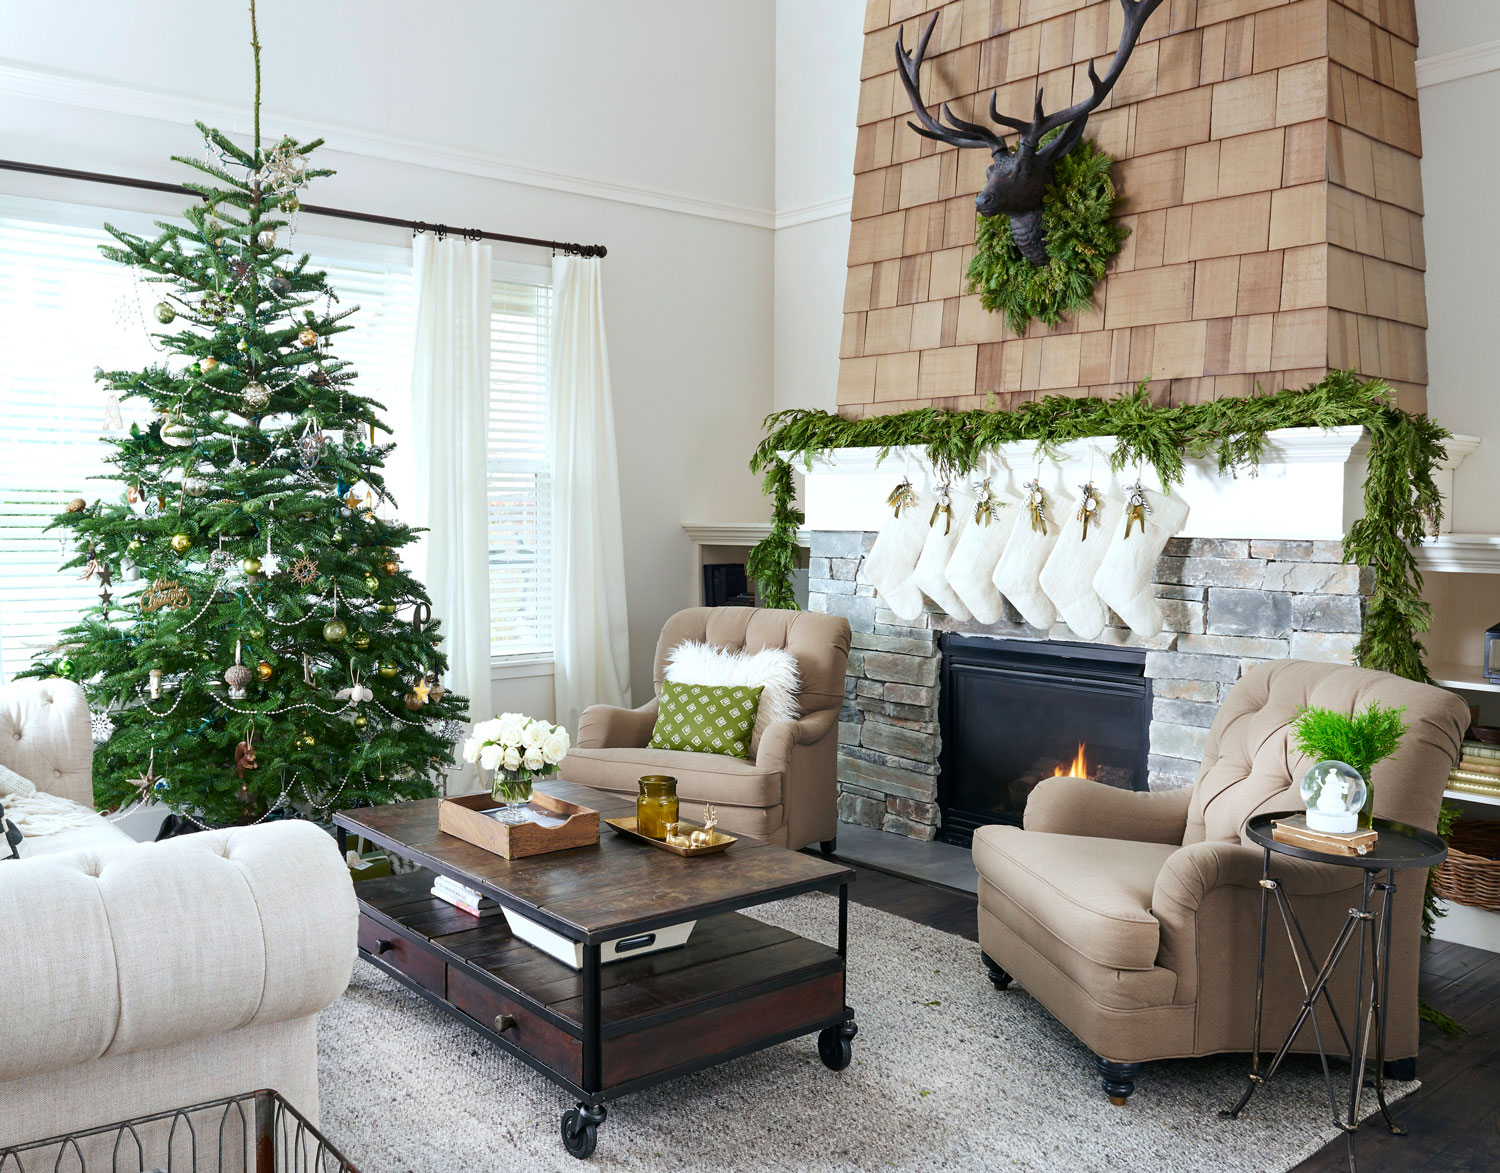 Rustic Christmas Décor | Traditional Home on Traditional Rustic Decor  id=39705